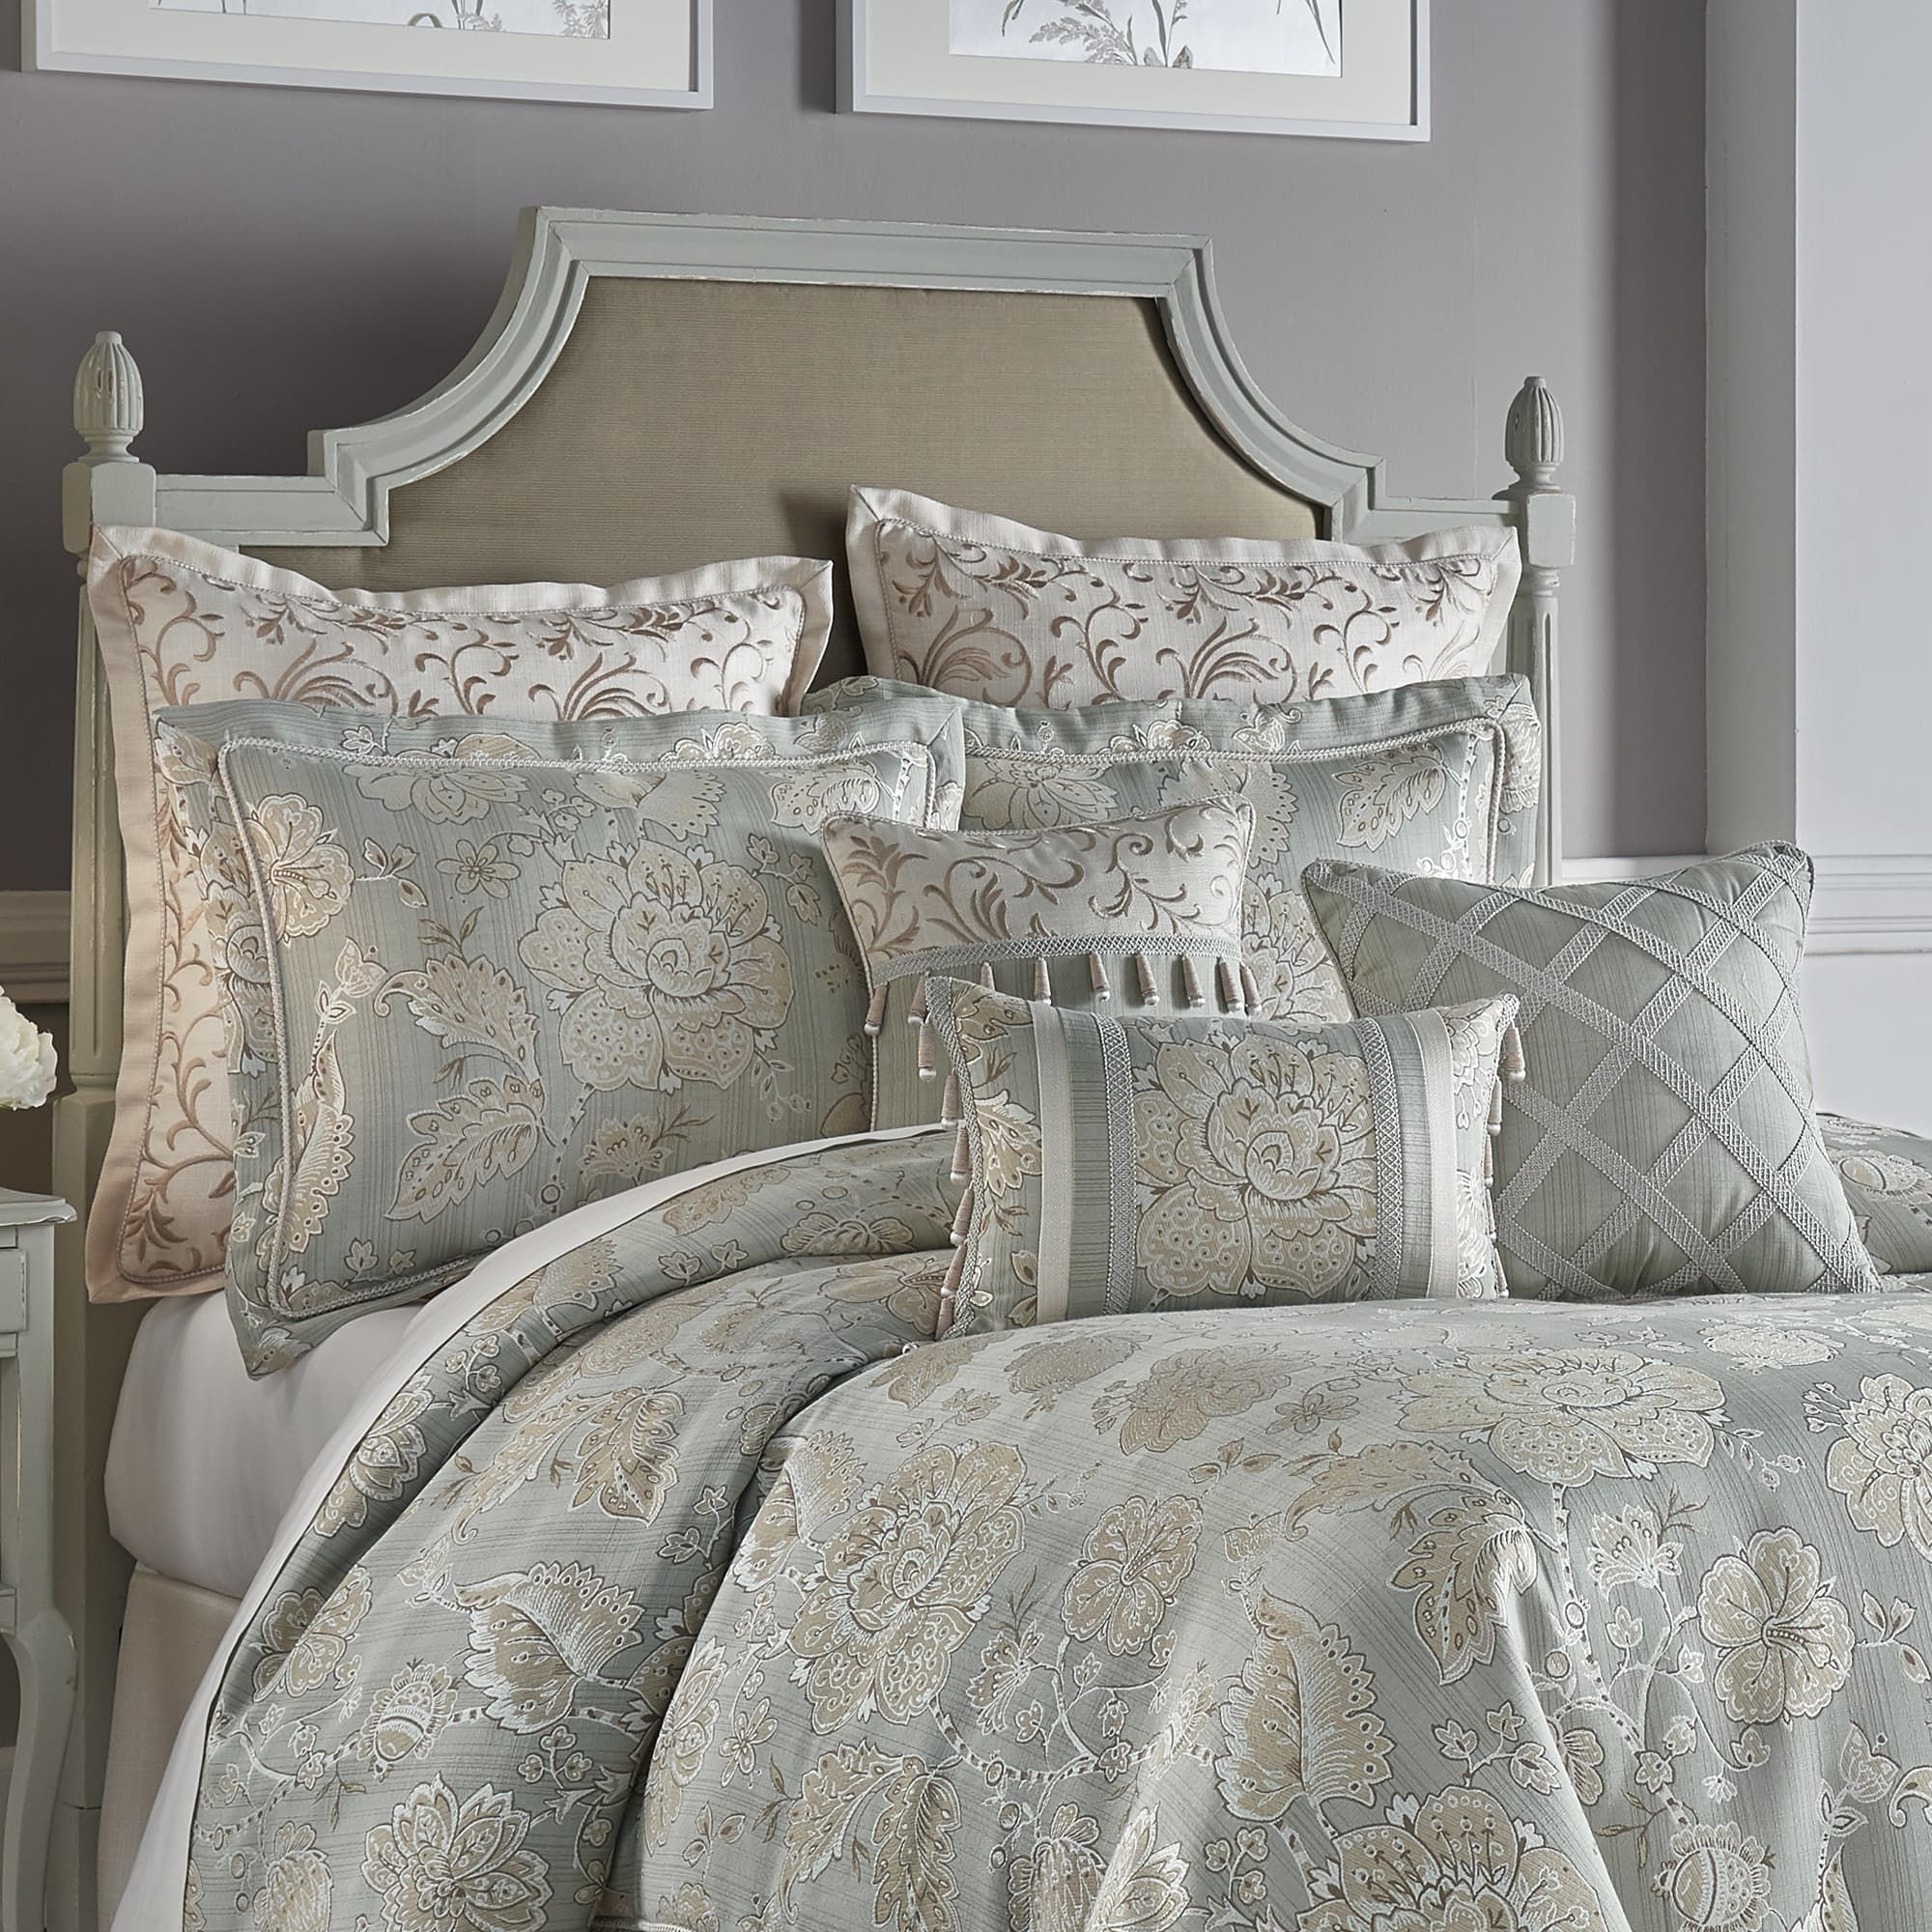 Croscill Caterina Comforter Set King 110 X 96